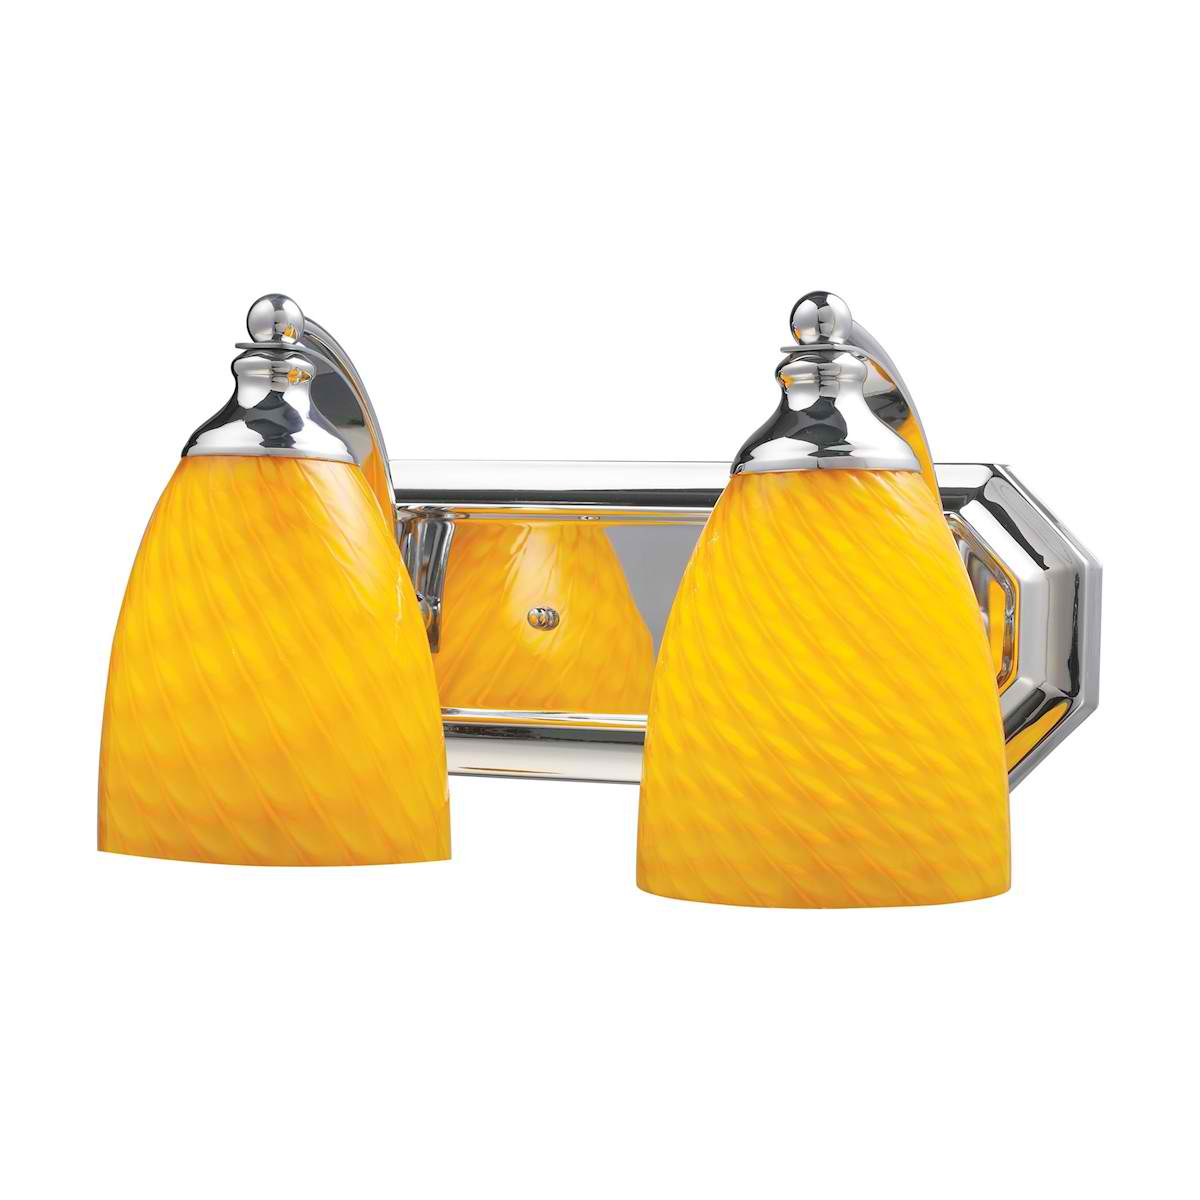 Vanity 2 Light Chrome with Canary Glass